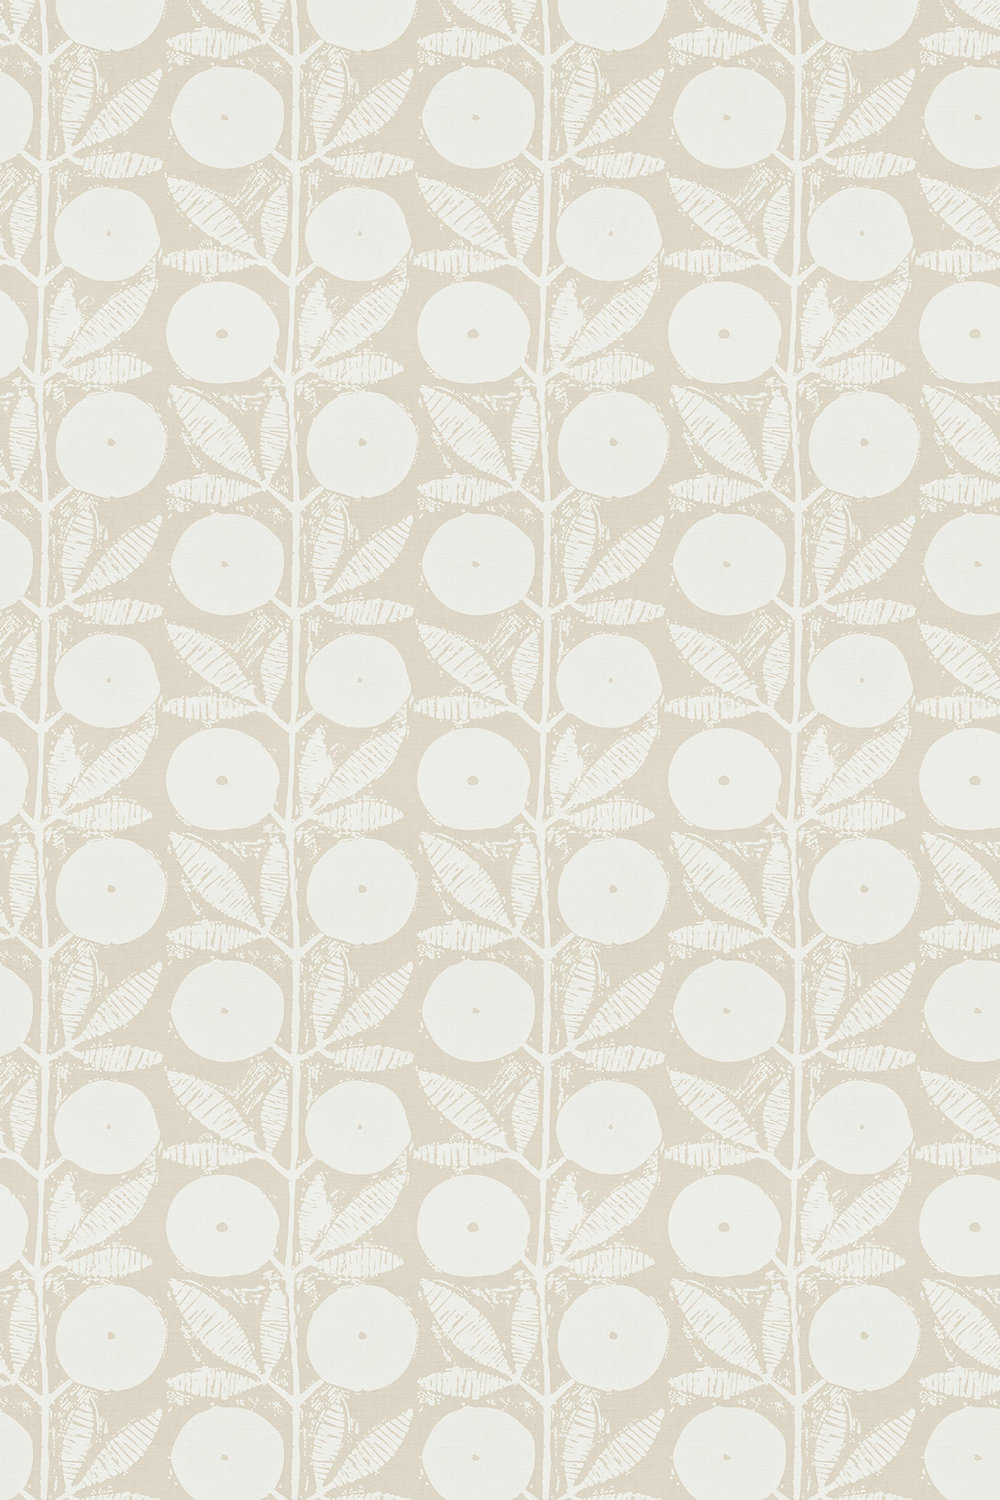 Somero Weave Fabric - Pebble and Pumice - by Scion